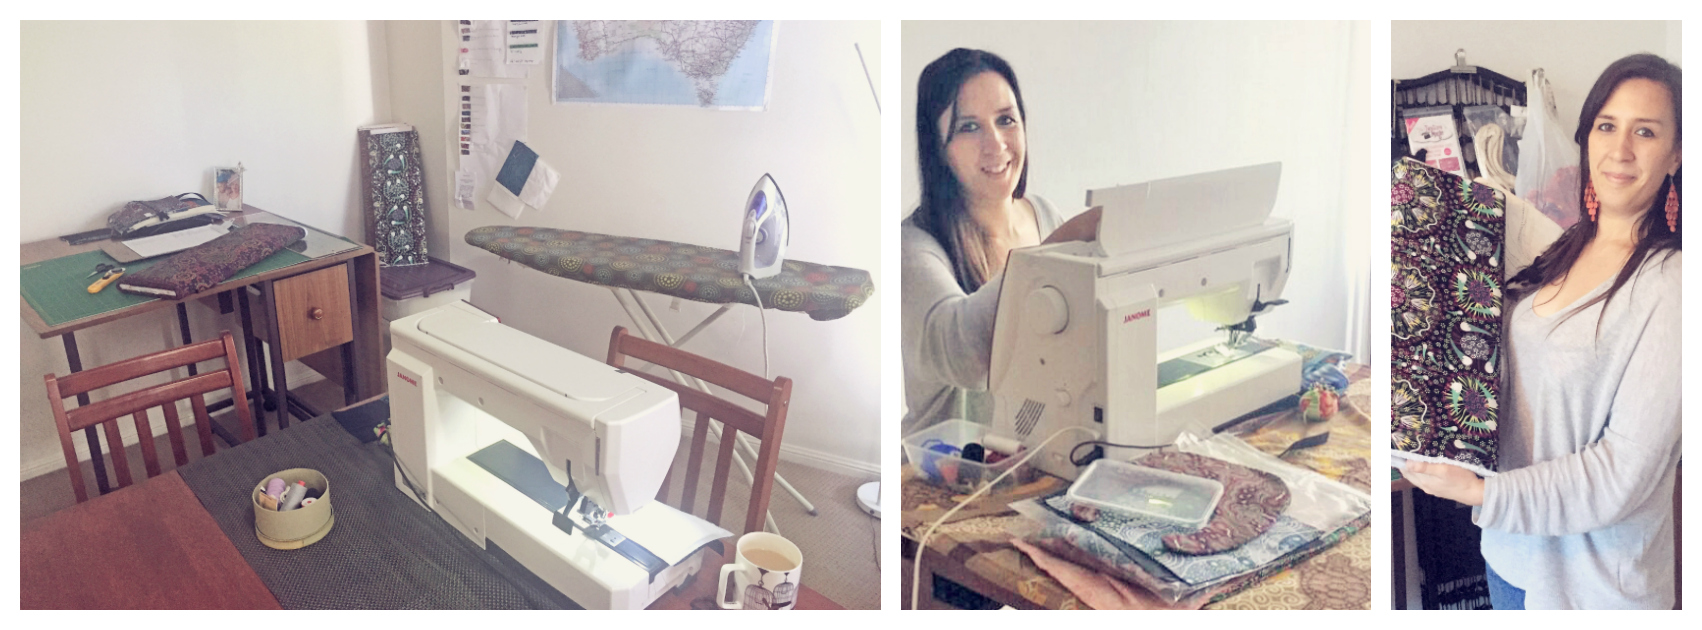 Orla's home workspace, Orla at work at the sewing machine, and Orla with a prized Australian indigenous fabric.'